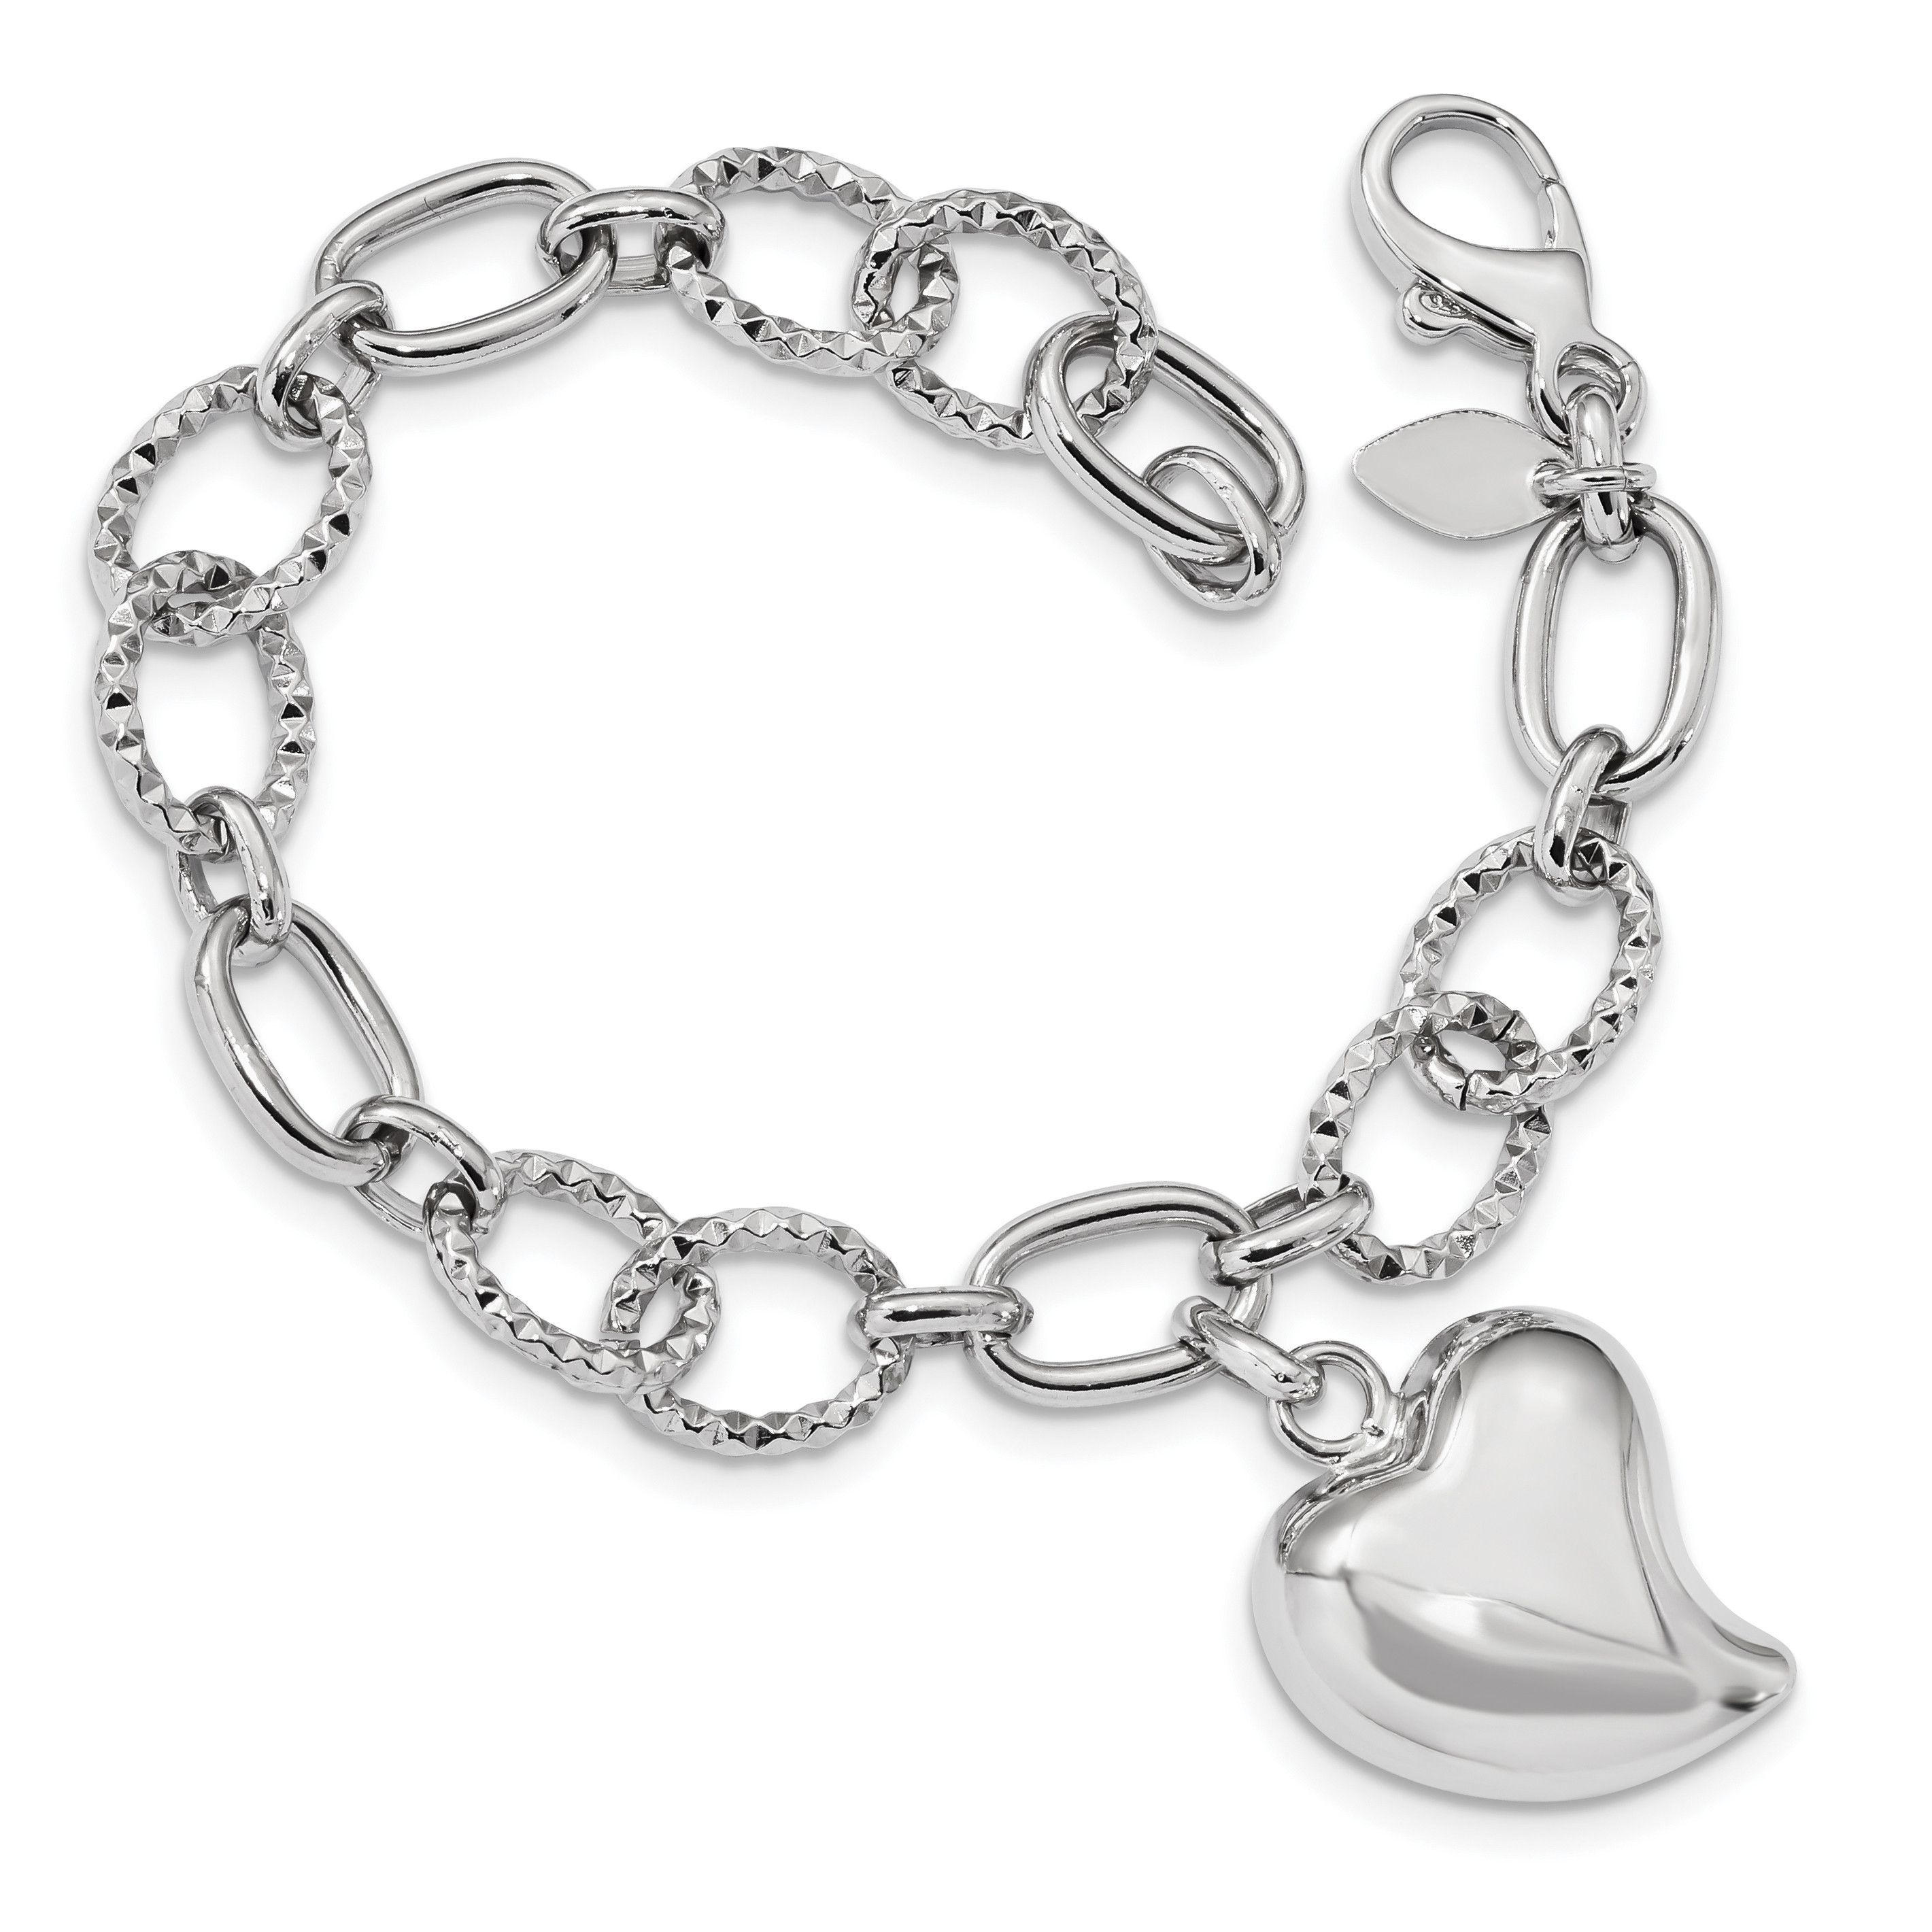 Platin-esszimmer-sets sterling silver rhodium plated polished puffed heart charm bracelet